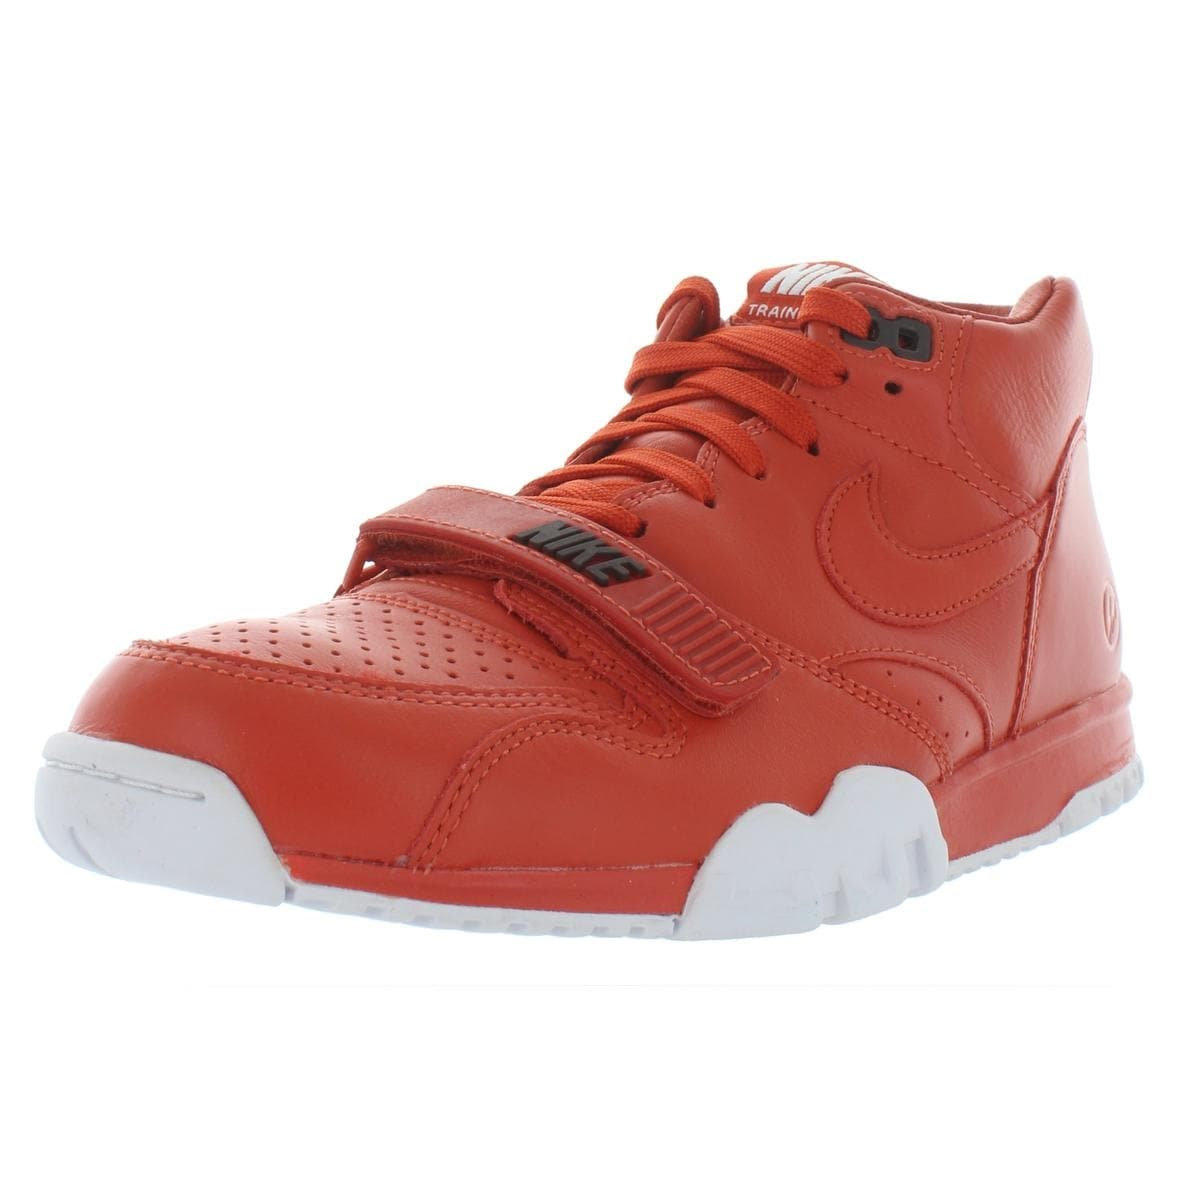 wholesale dealer 3b8e9 5174e Shop Nike Mens Air Trainer 1 Mid Sp Fragment Athletic Shoes Leather Mid-Top  - Free Shipping Today - Overstock - 27998604